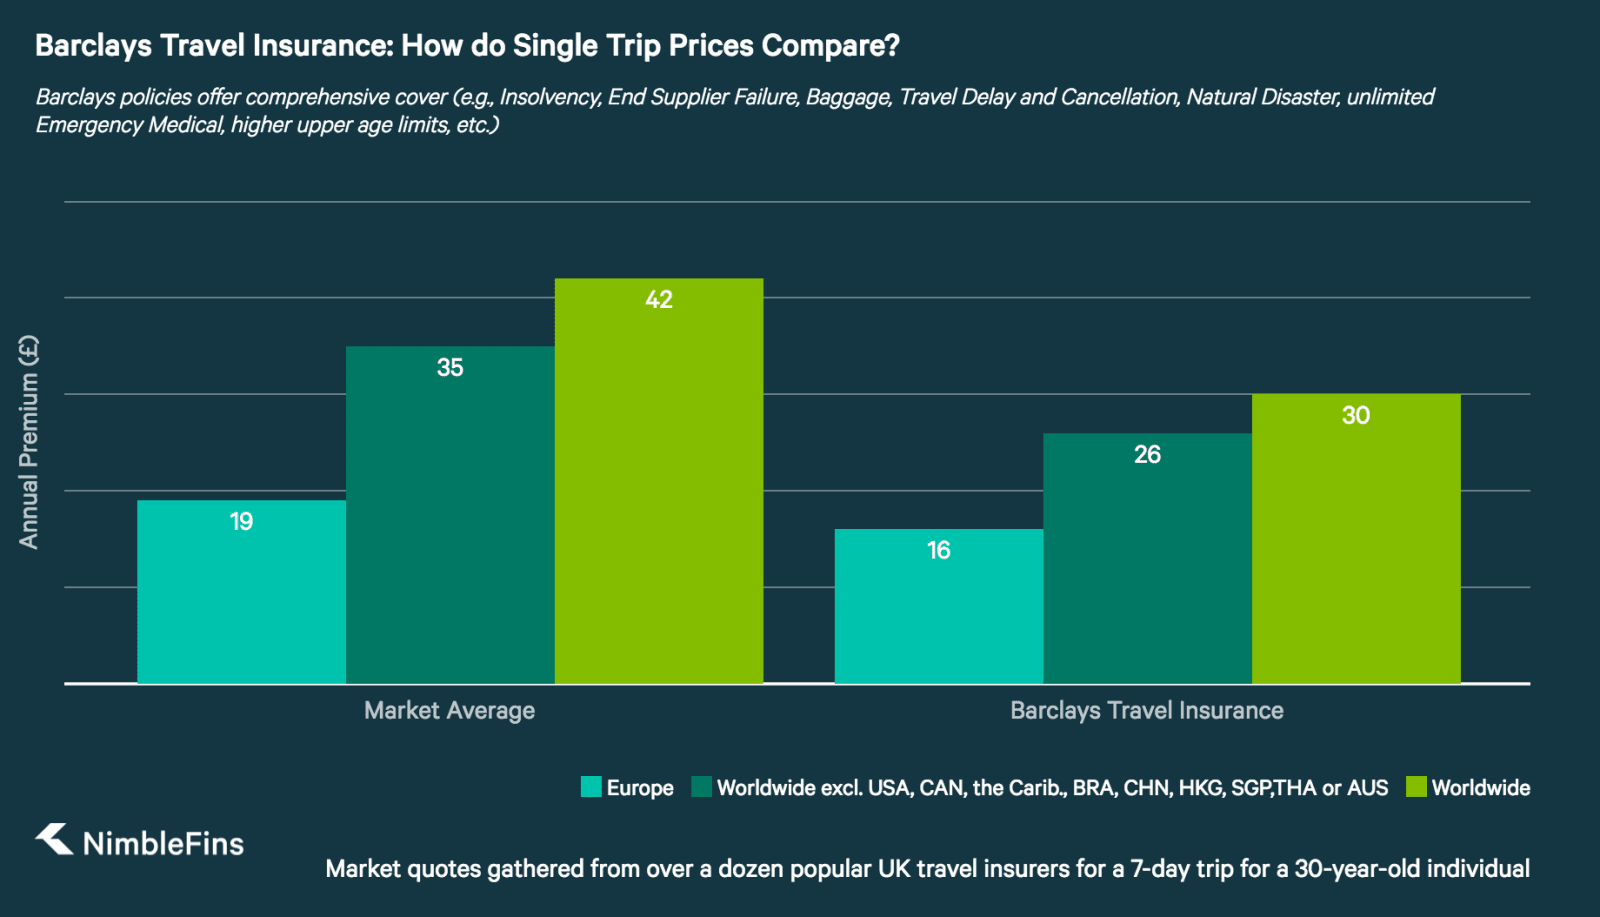 chart showing Tesco single-trip travel insurance prices compared to market averages